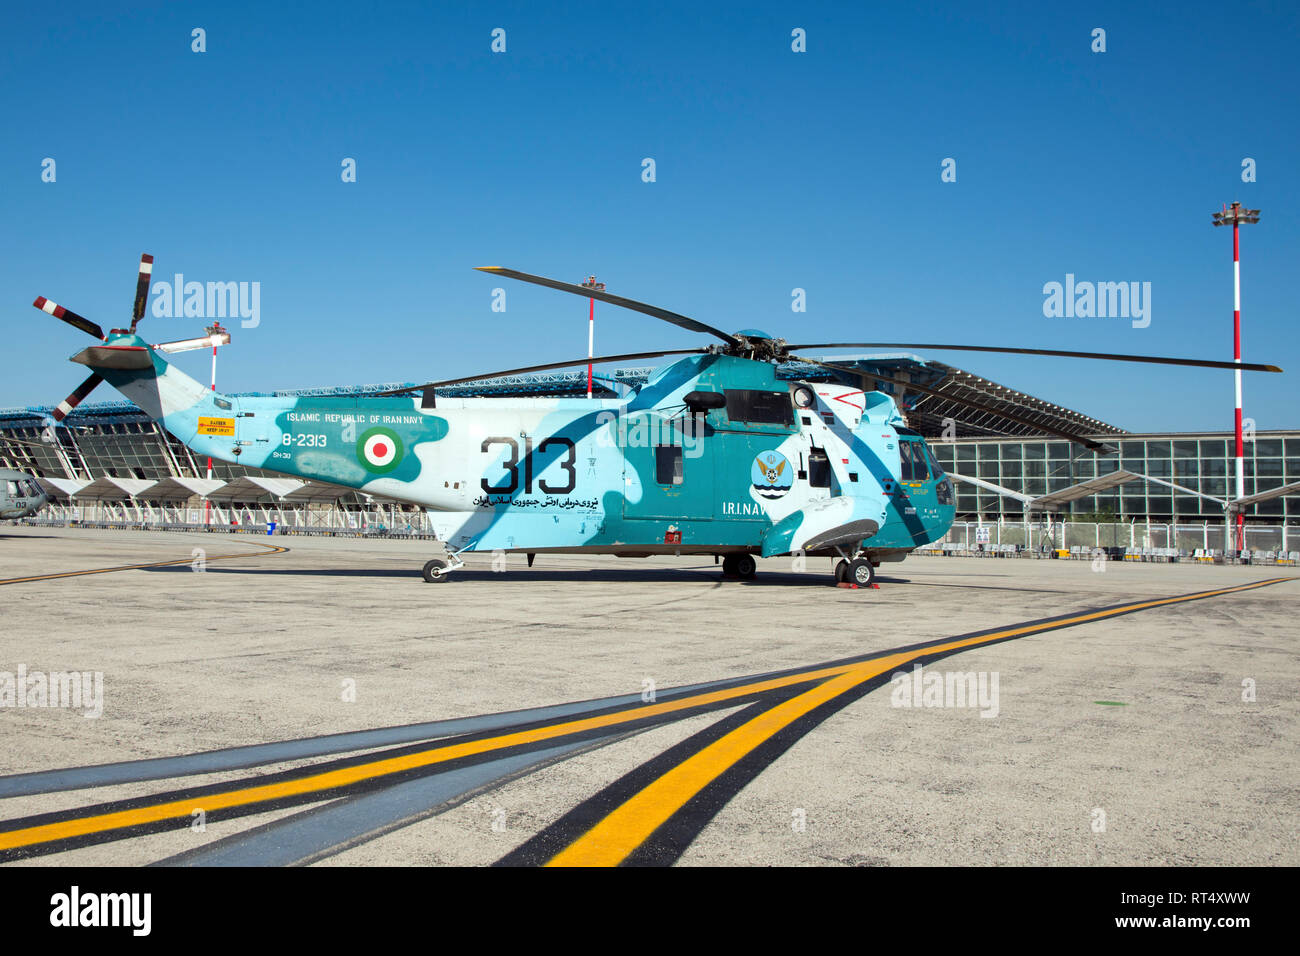 An ASH-3D Sea King anti-submarine helicopter of the Islamic Republic of Iran Navy. Stock Photo